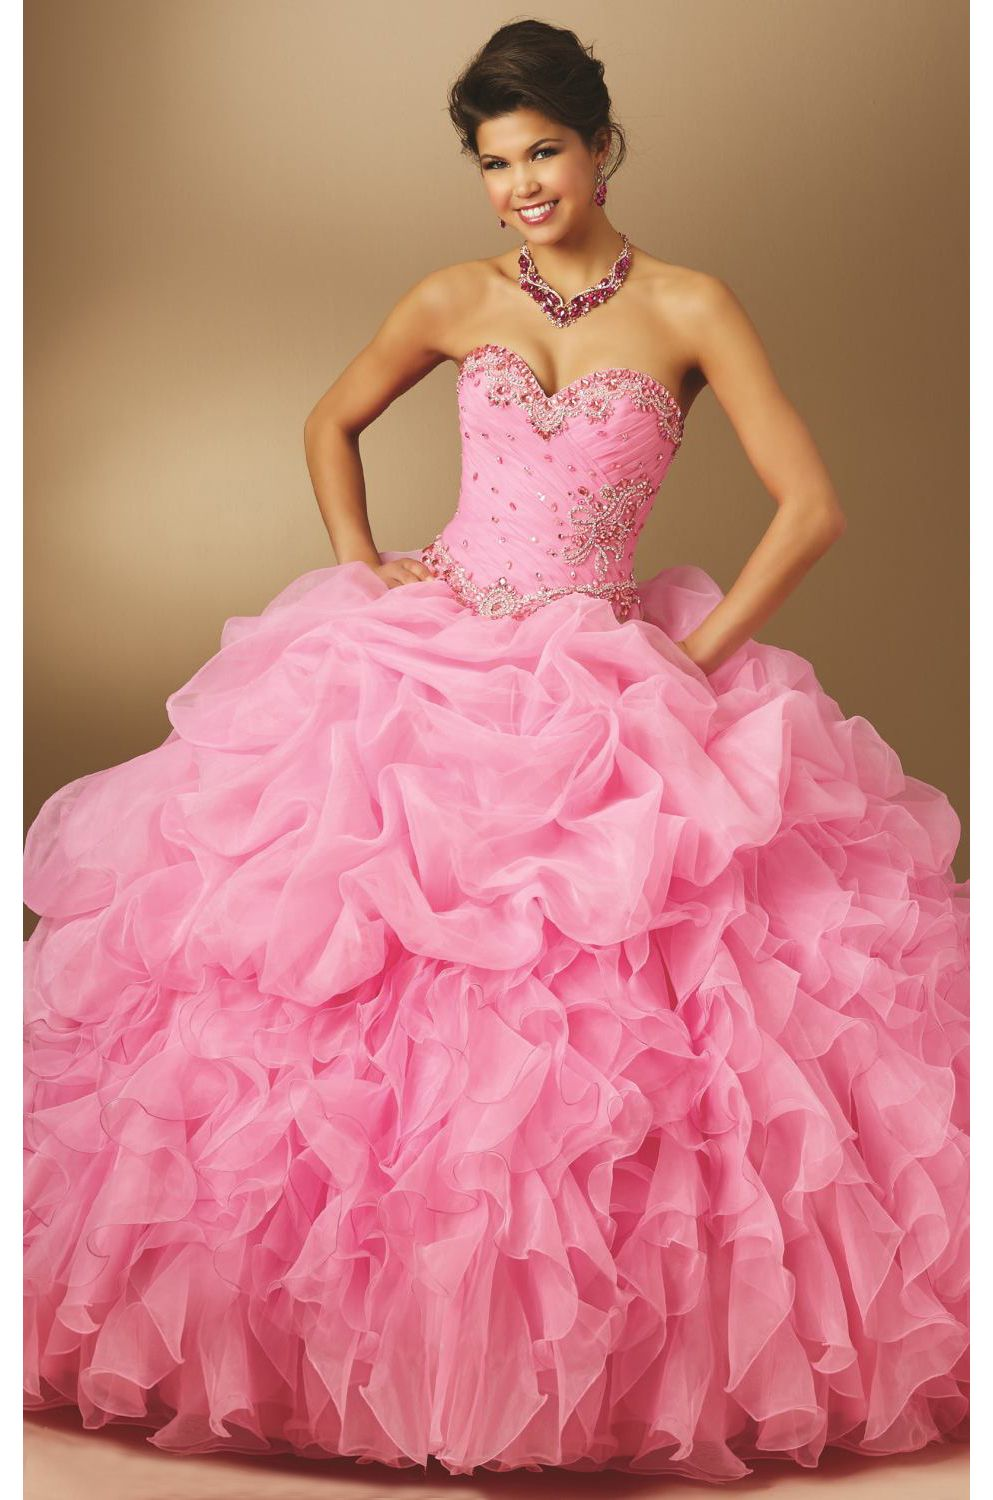 Jeweled Ruffled Organza Ballgown www.findress.com   Evening Gowns ...